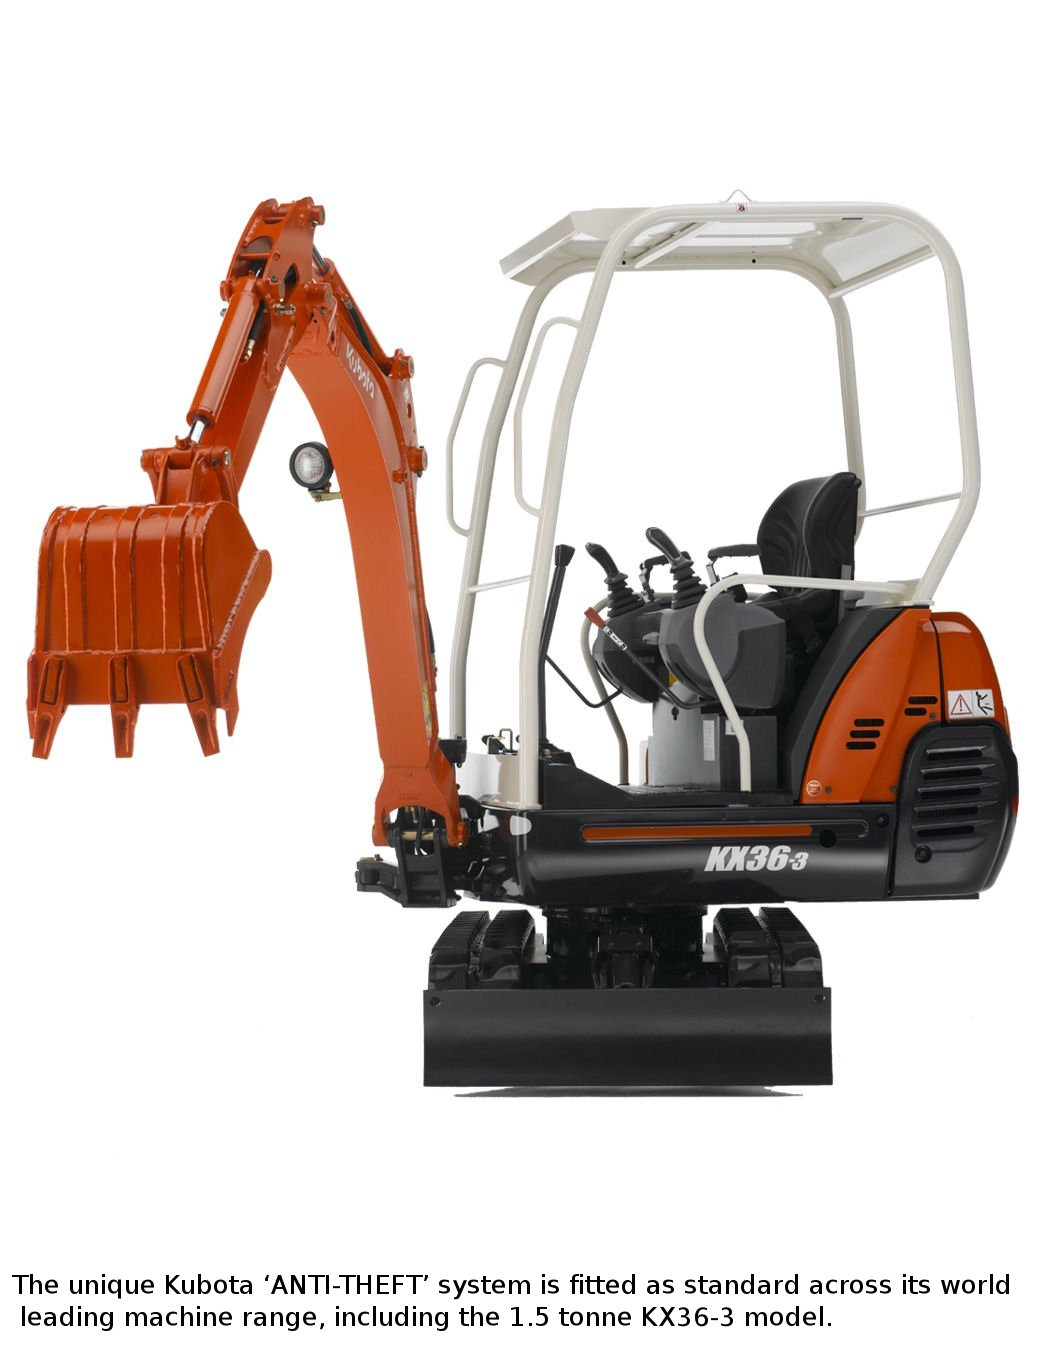 Kubota 'Anti-Theft' system halts mini theft